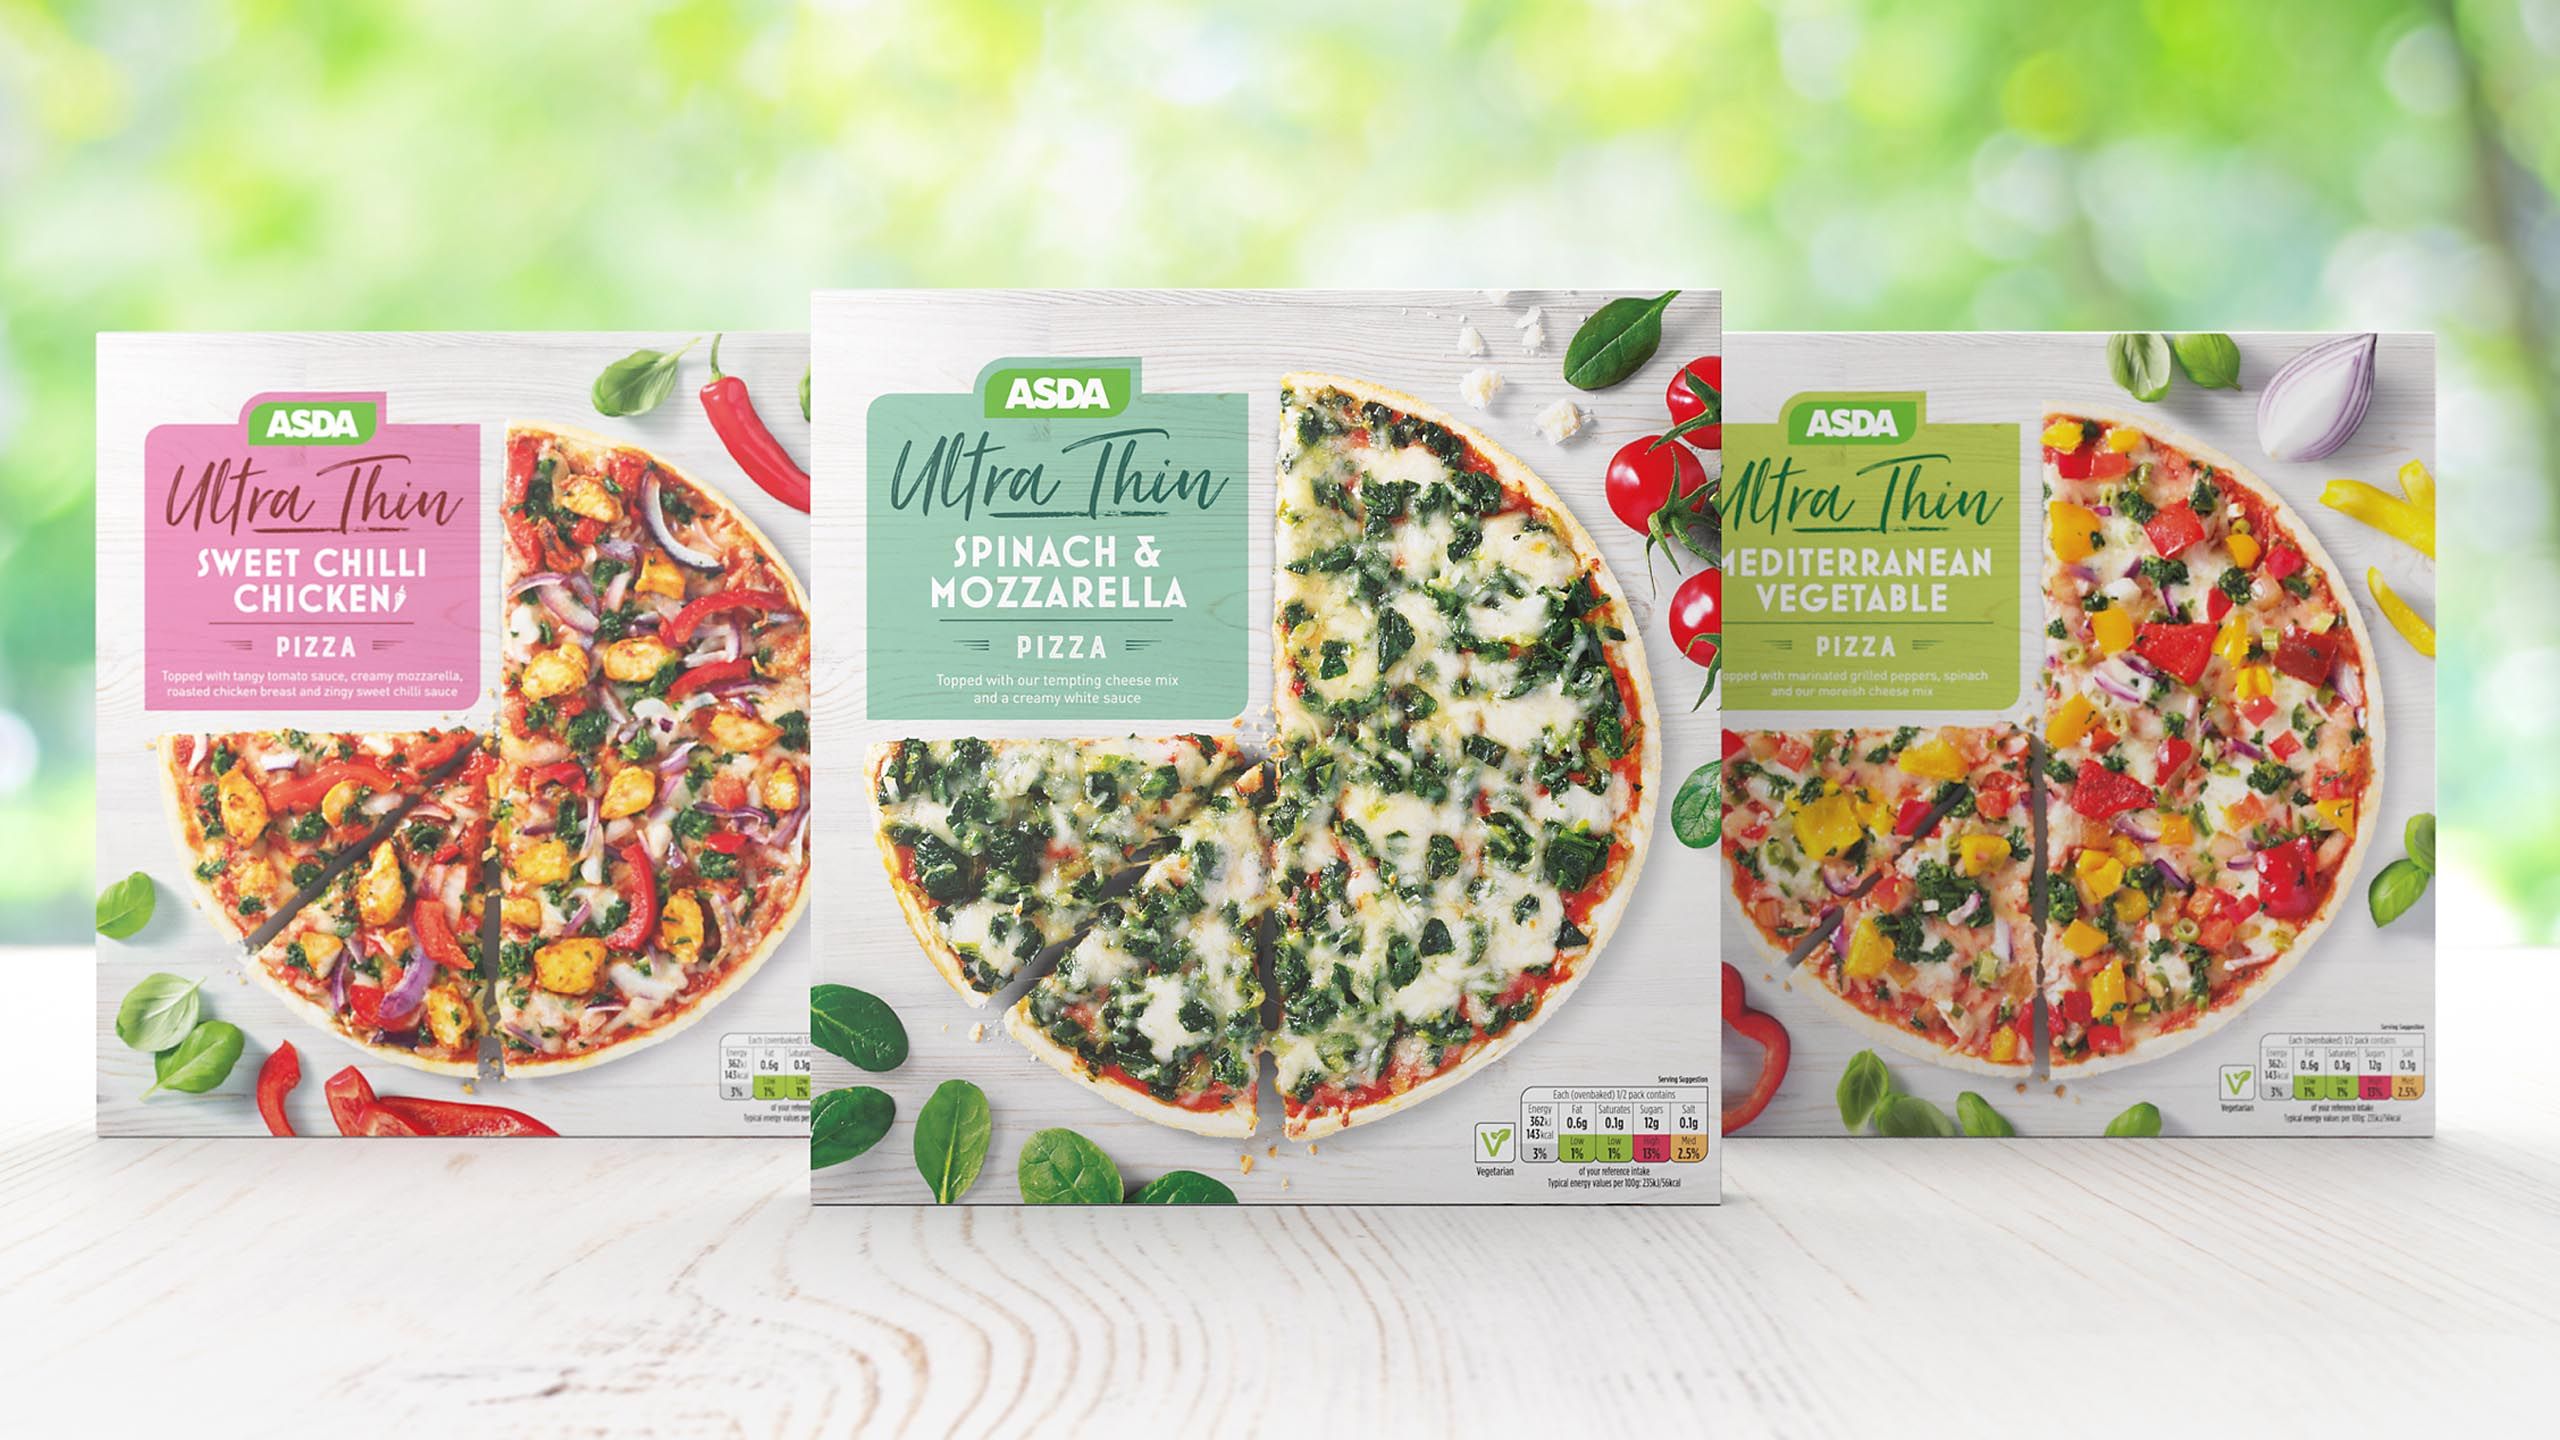 Lineup of ASDA Ultra Thin pizza design